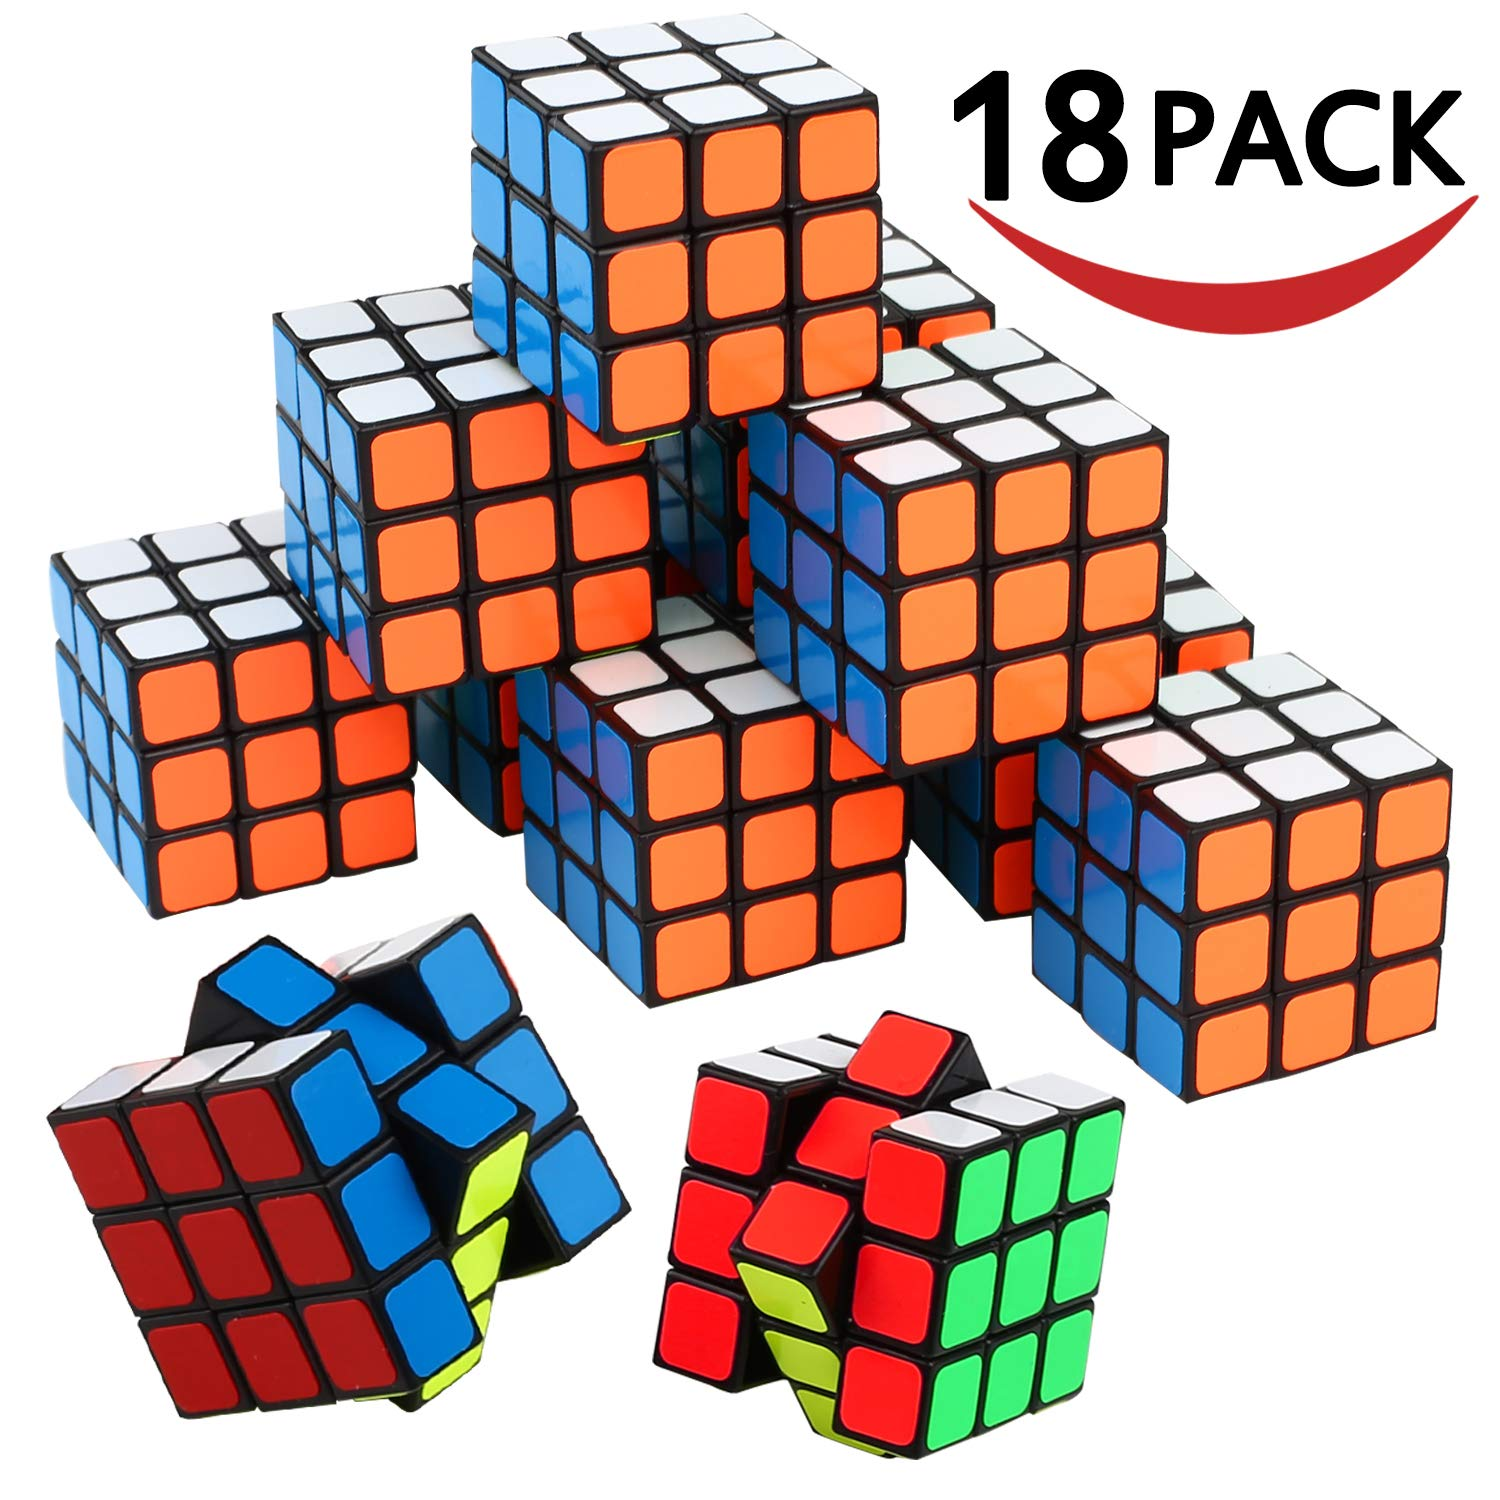 Mini Cube, Puzzle Party Toy(18 Pack), Eco-friendly Material with Vivid Colors,Party favor School Supplies Puzzle Game Set for Boy Girl Kid Child, Magic Cube Goody Bag Filler Birthday Gift Giveaway by KarberDirect